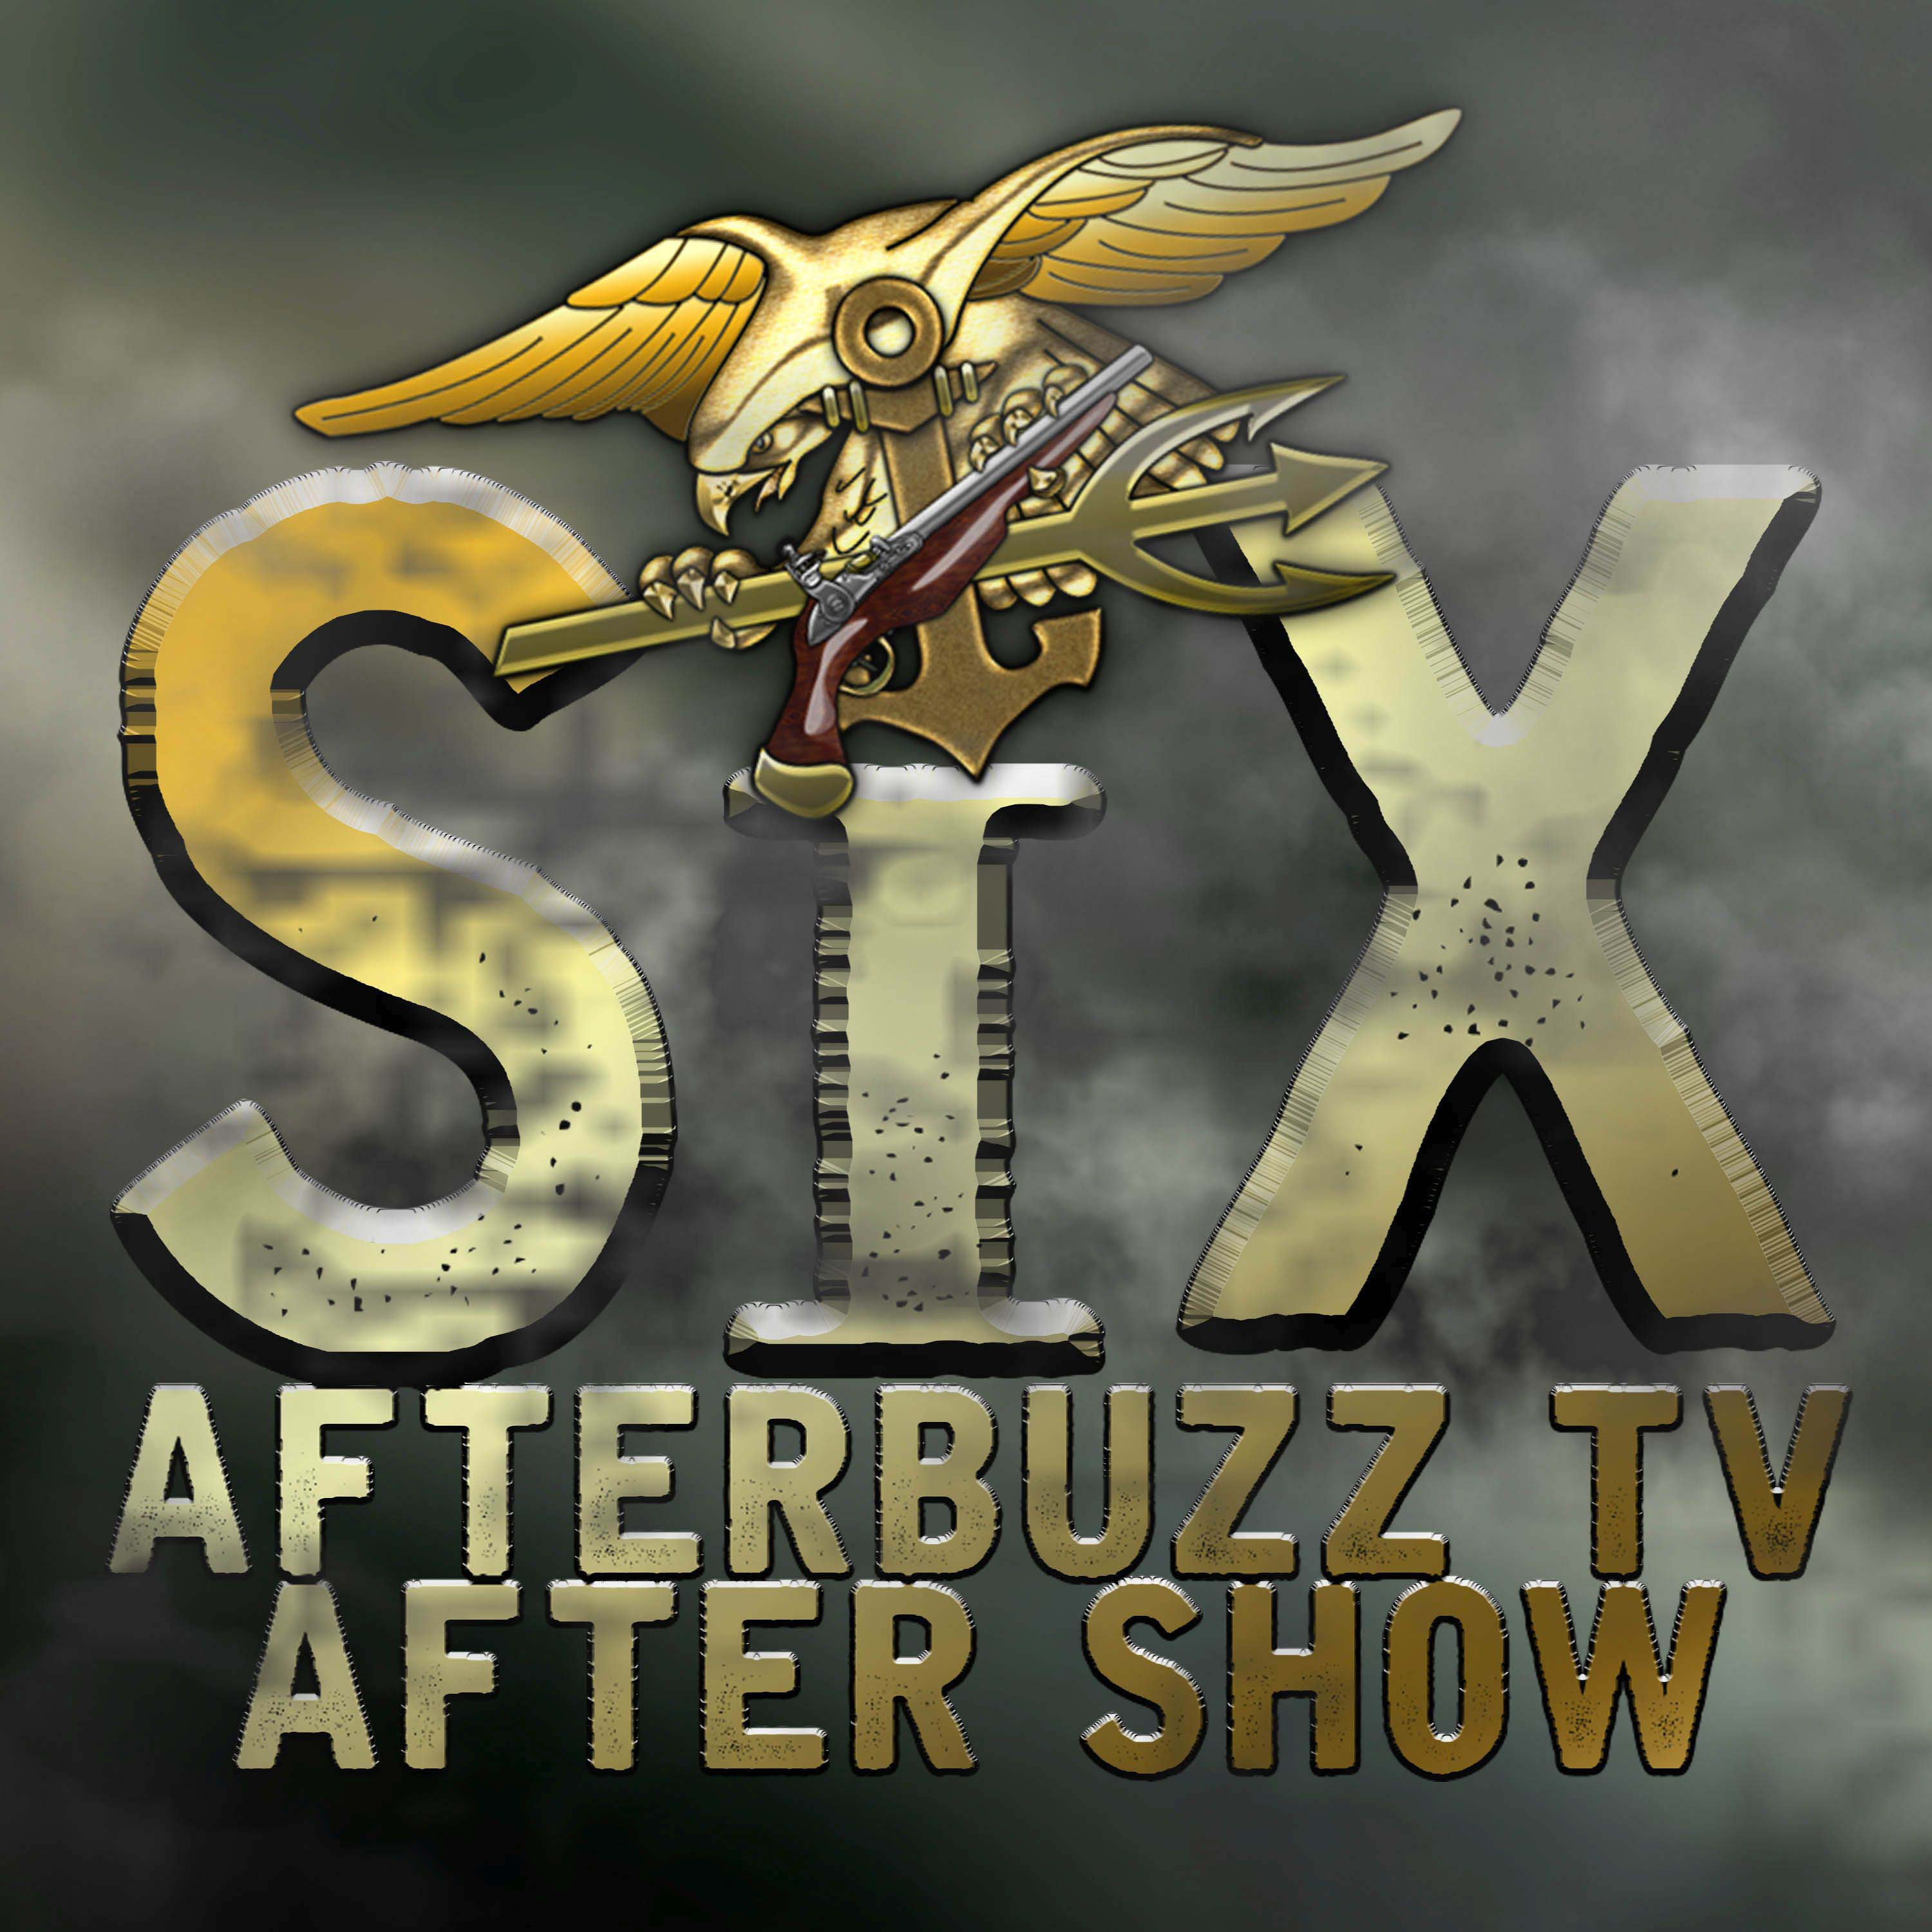 Six After Show